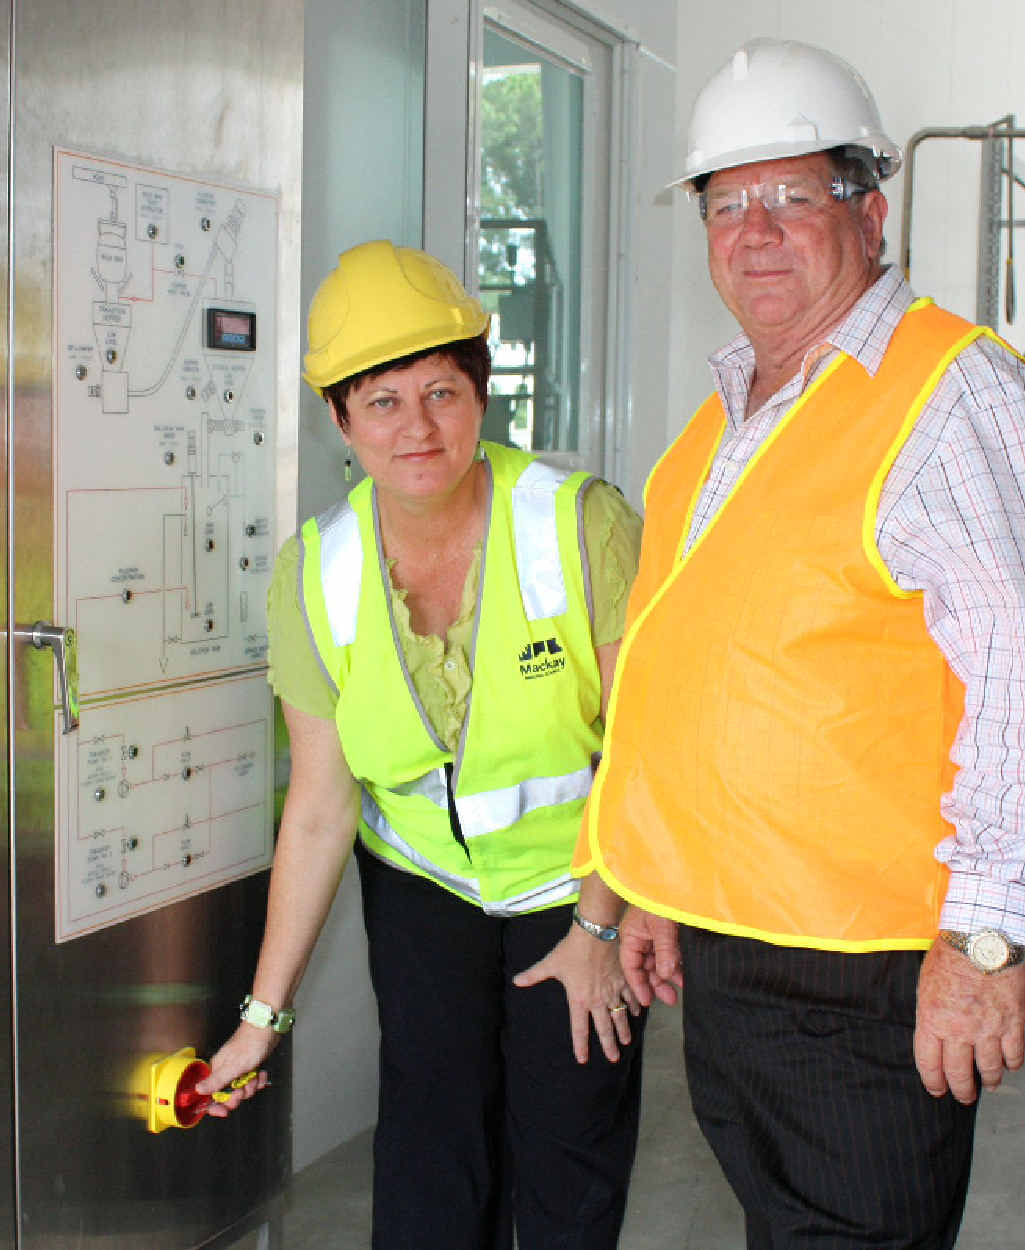 Cr Comerford with then-mayor Col Meng doing final checks just days before fluoride was put into Mackay's water system back in December 2009.